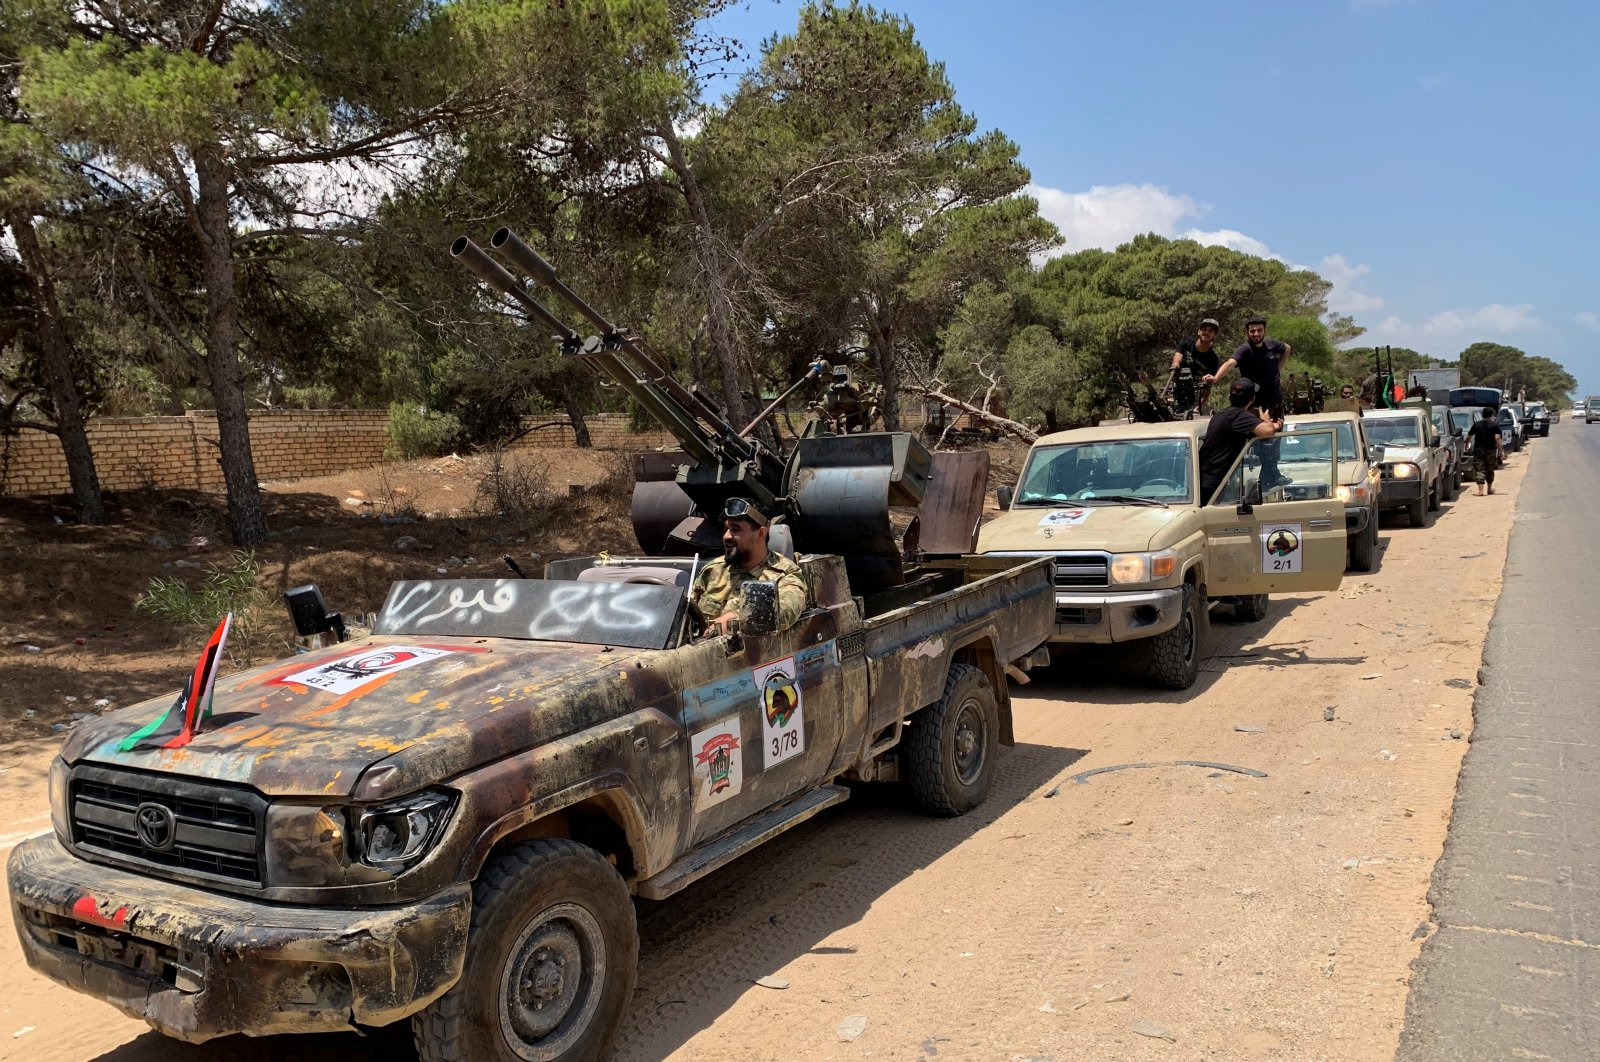 Troops loyal to Libya's internationally recognized government are seen in military vehicles as they prepare before heading to Sirte, in Tripoli, Libya, July 6, 2020. (REUTERS Photo)